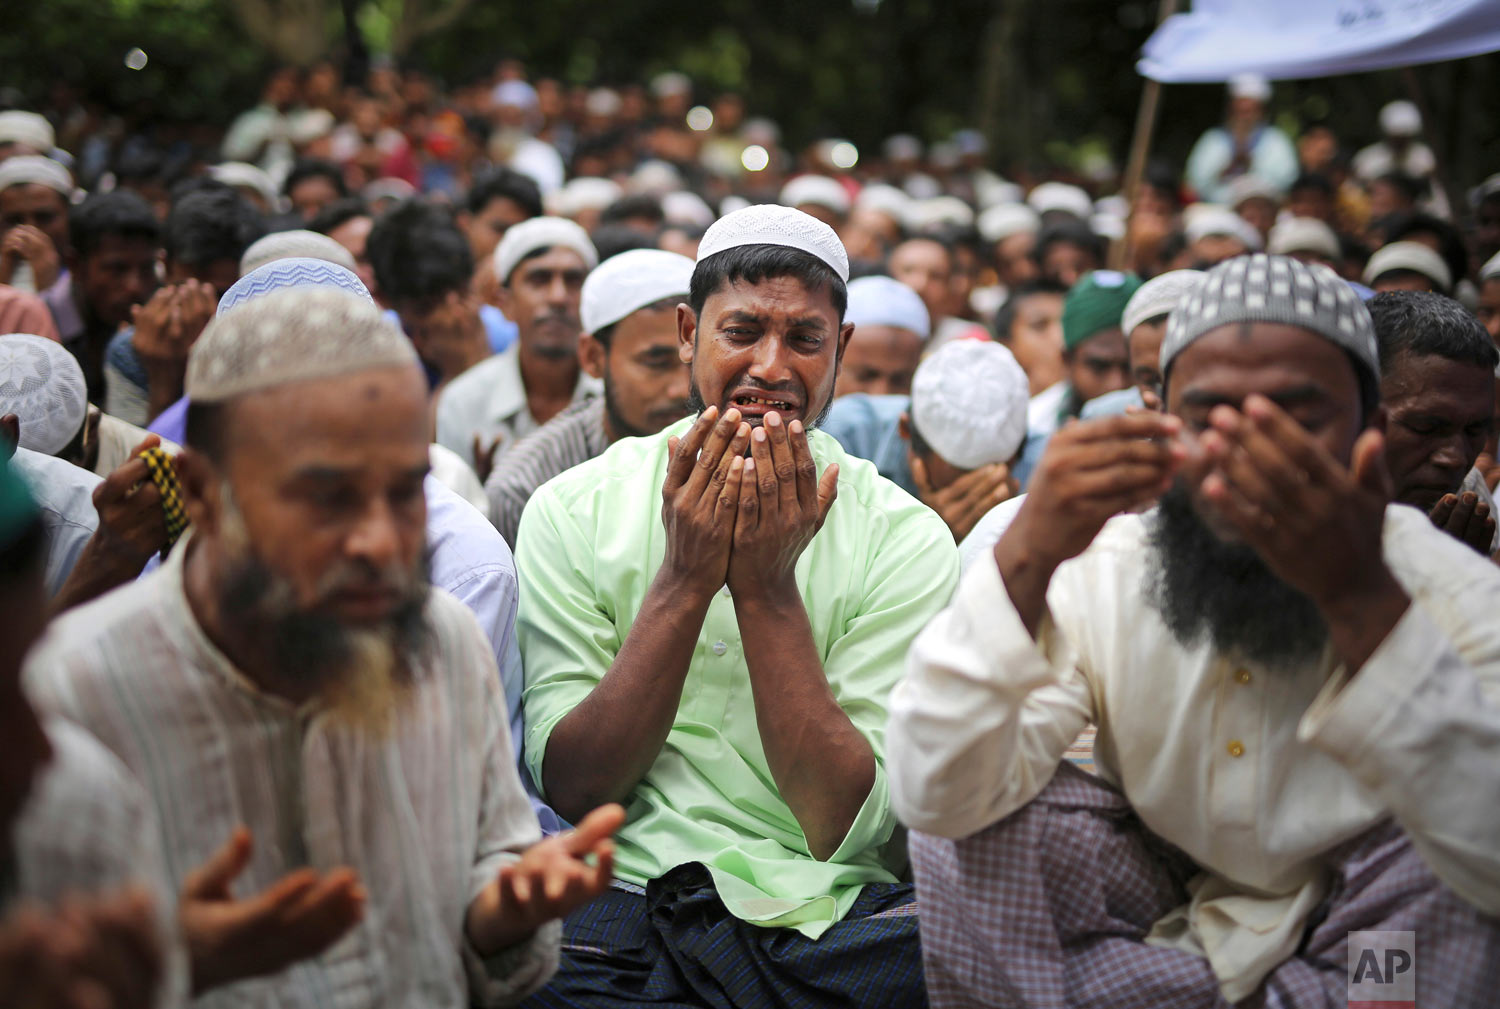 Rohingya refugees cry as they pray during a gathering to commemorate the first anniversary of Myanmar army's crackdown which led to a mass exodus of Rohingya Muslims to Bangladesh, at Kutupalong refugee camp in Bangladesh, Thursday, Aug. 25, 2018. (AP Photo/Altaf Qadri)